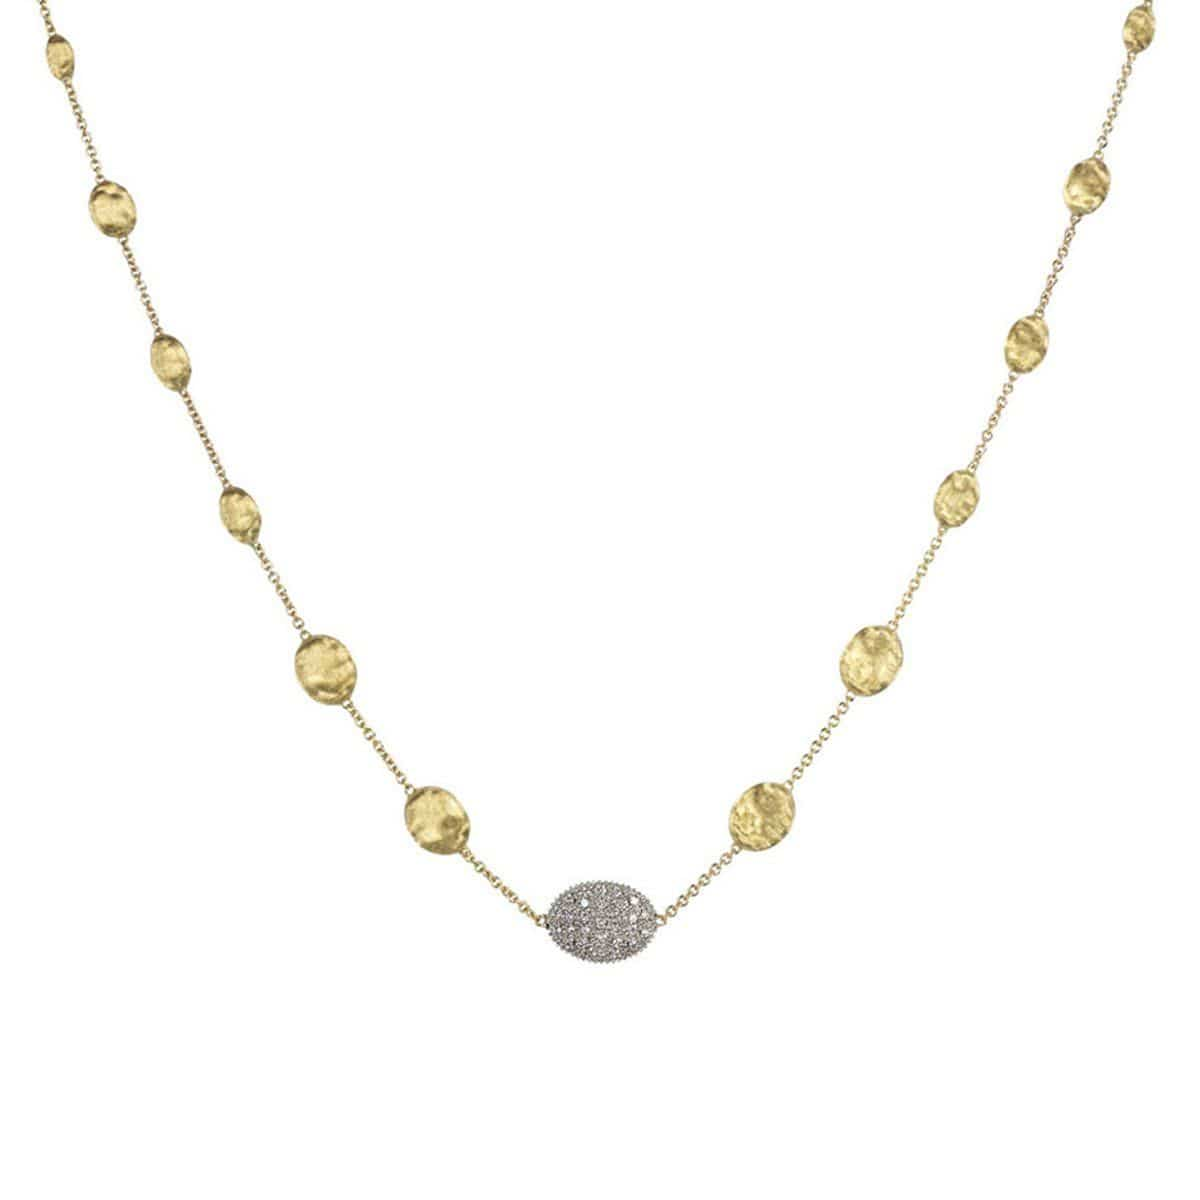 necklace fifth browse diamond at xlarge saks anita gold ko shopstyle graduated avenue